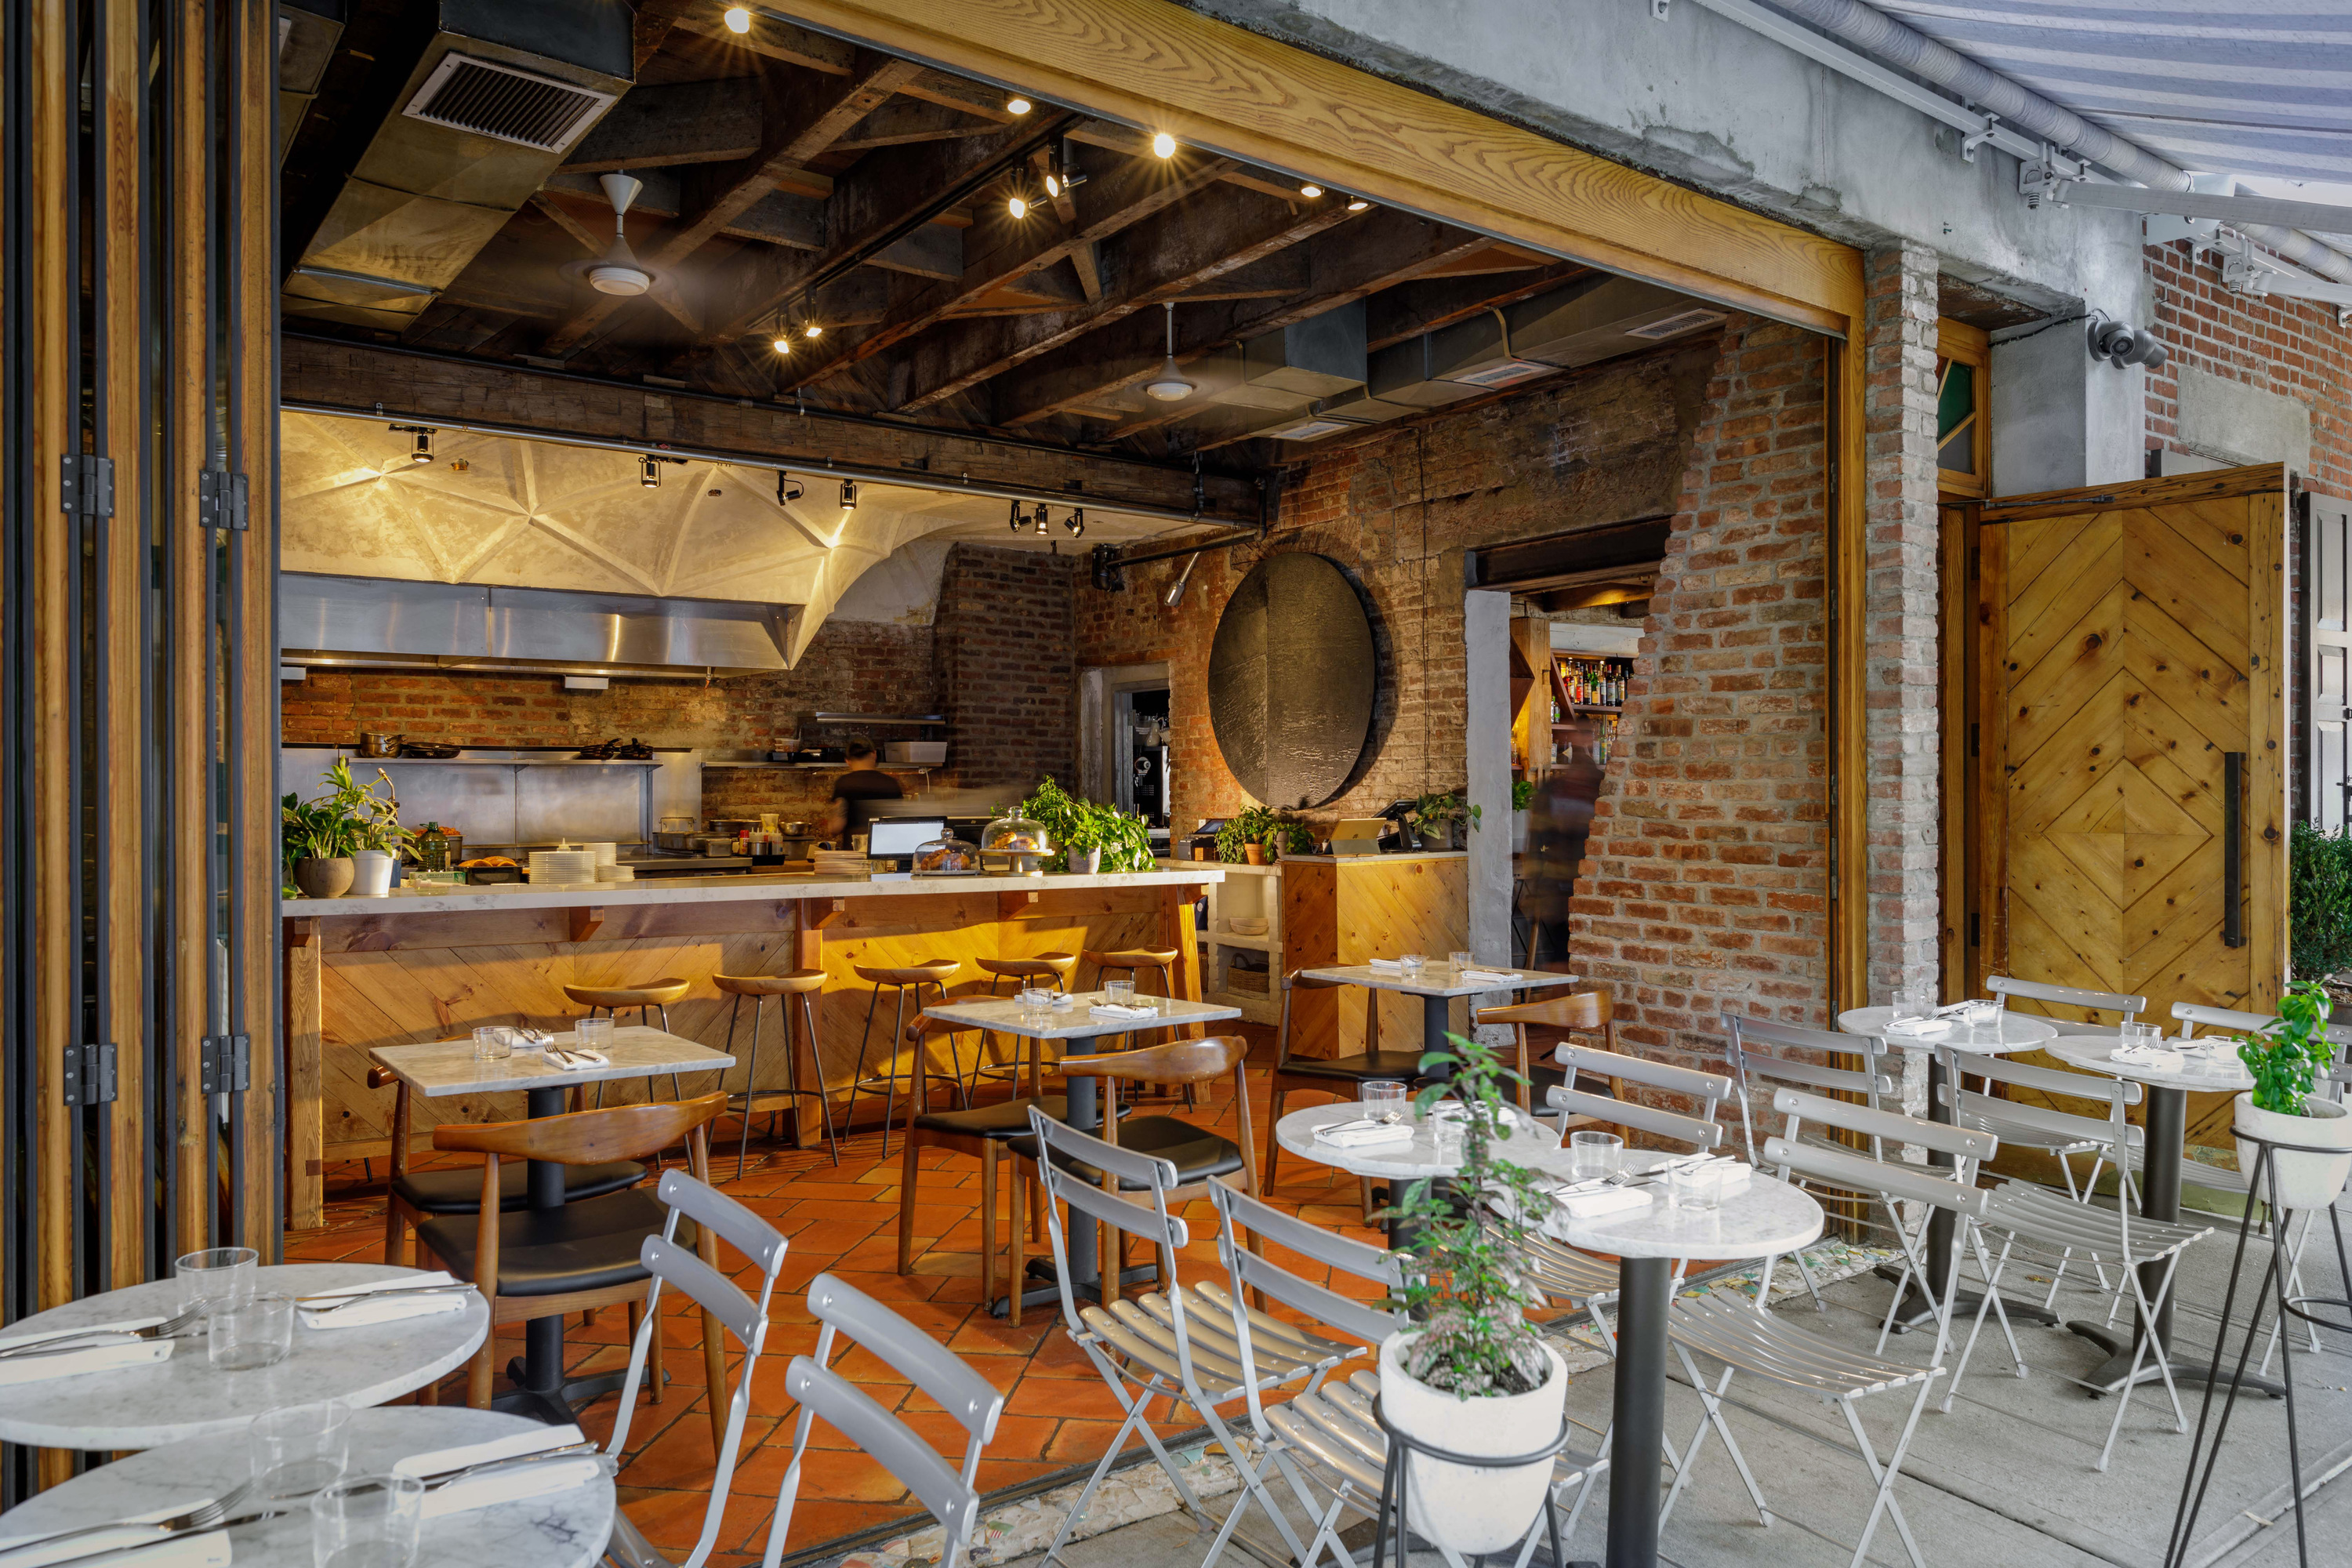 Find a rooftop brunch in NYC from hotel terraces to beer-bar decks